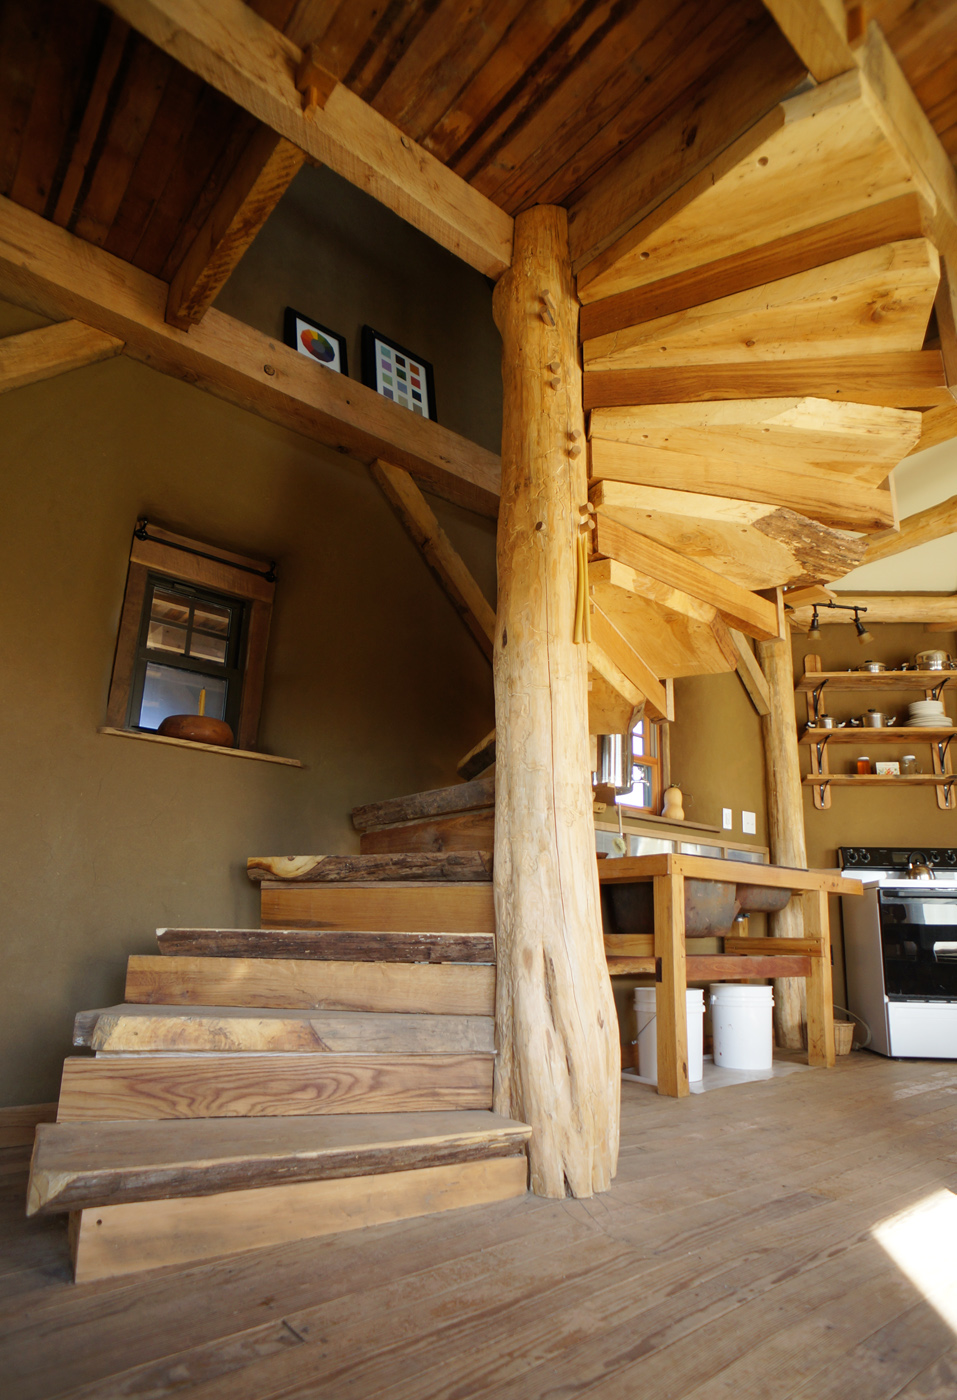 Timber Frame & Straw Bale House For Sale | Natural Home For Sale